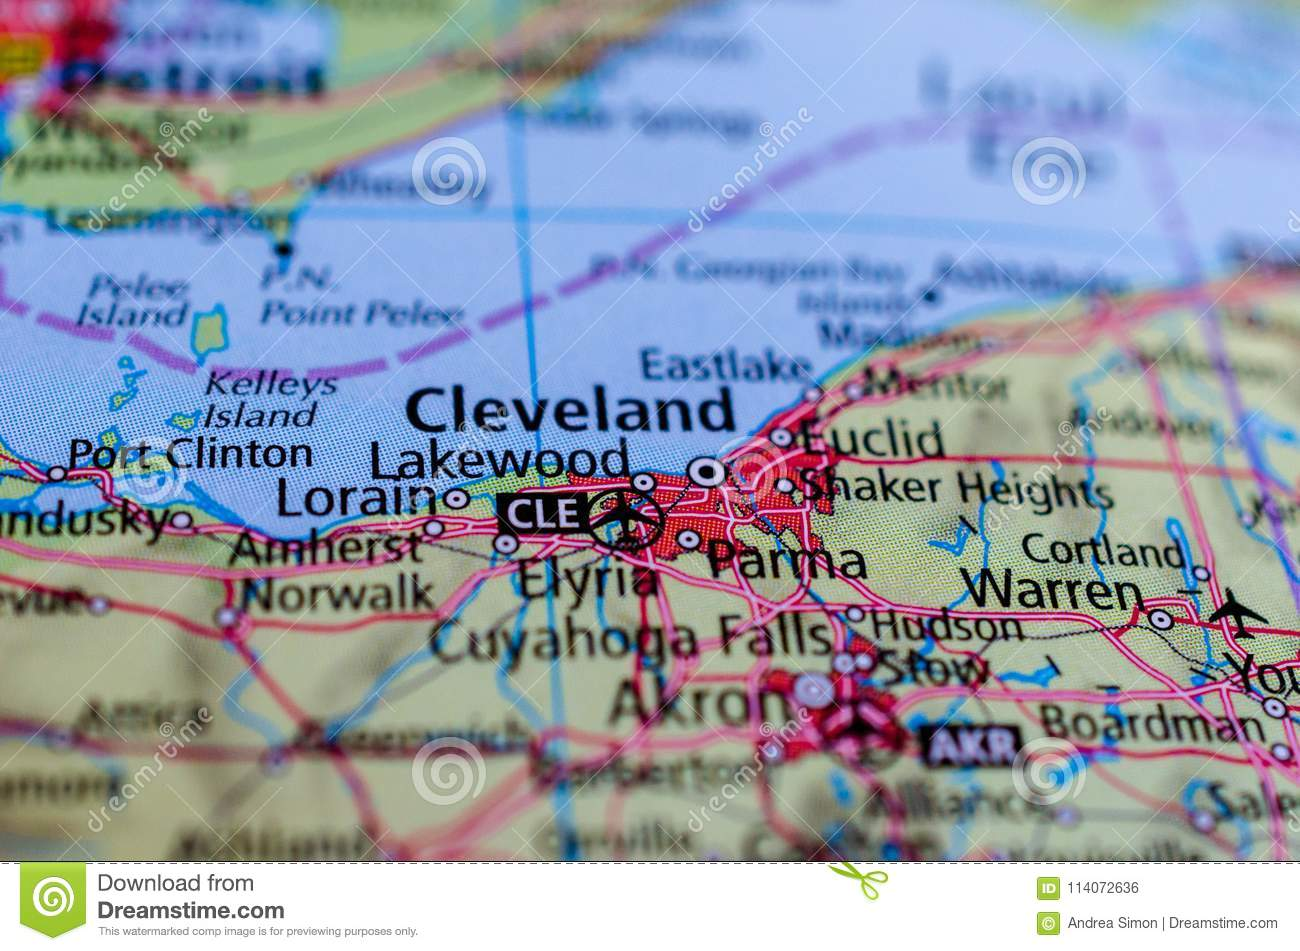 Cleveland On Map Stock Photo Image Of City Located 114072636